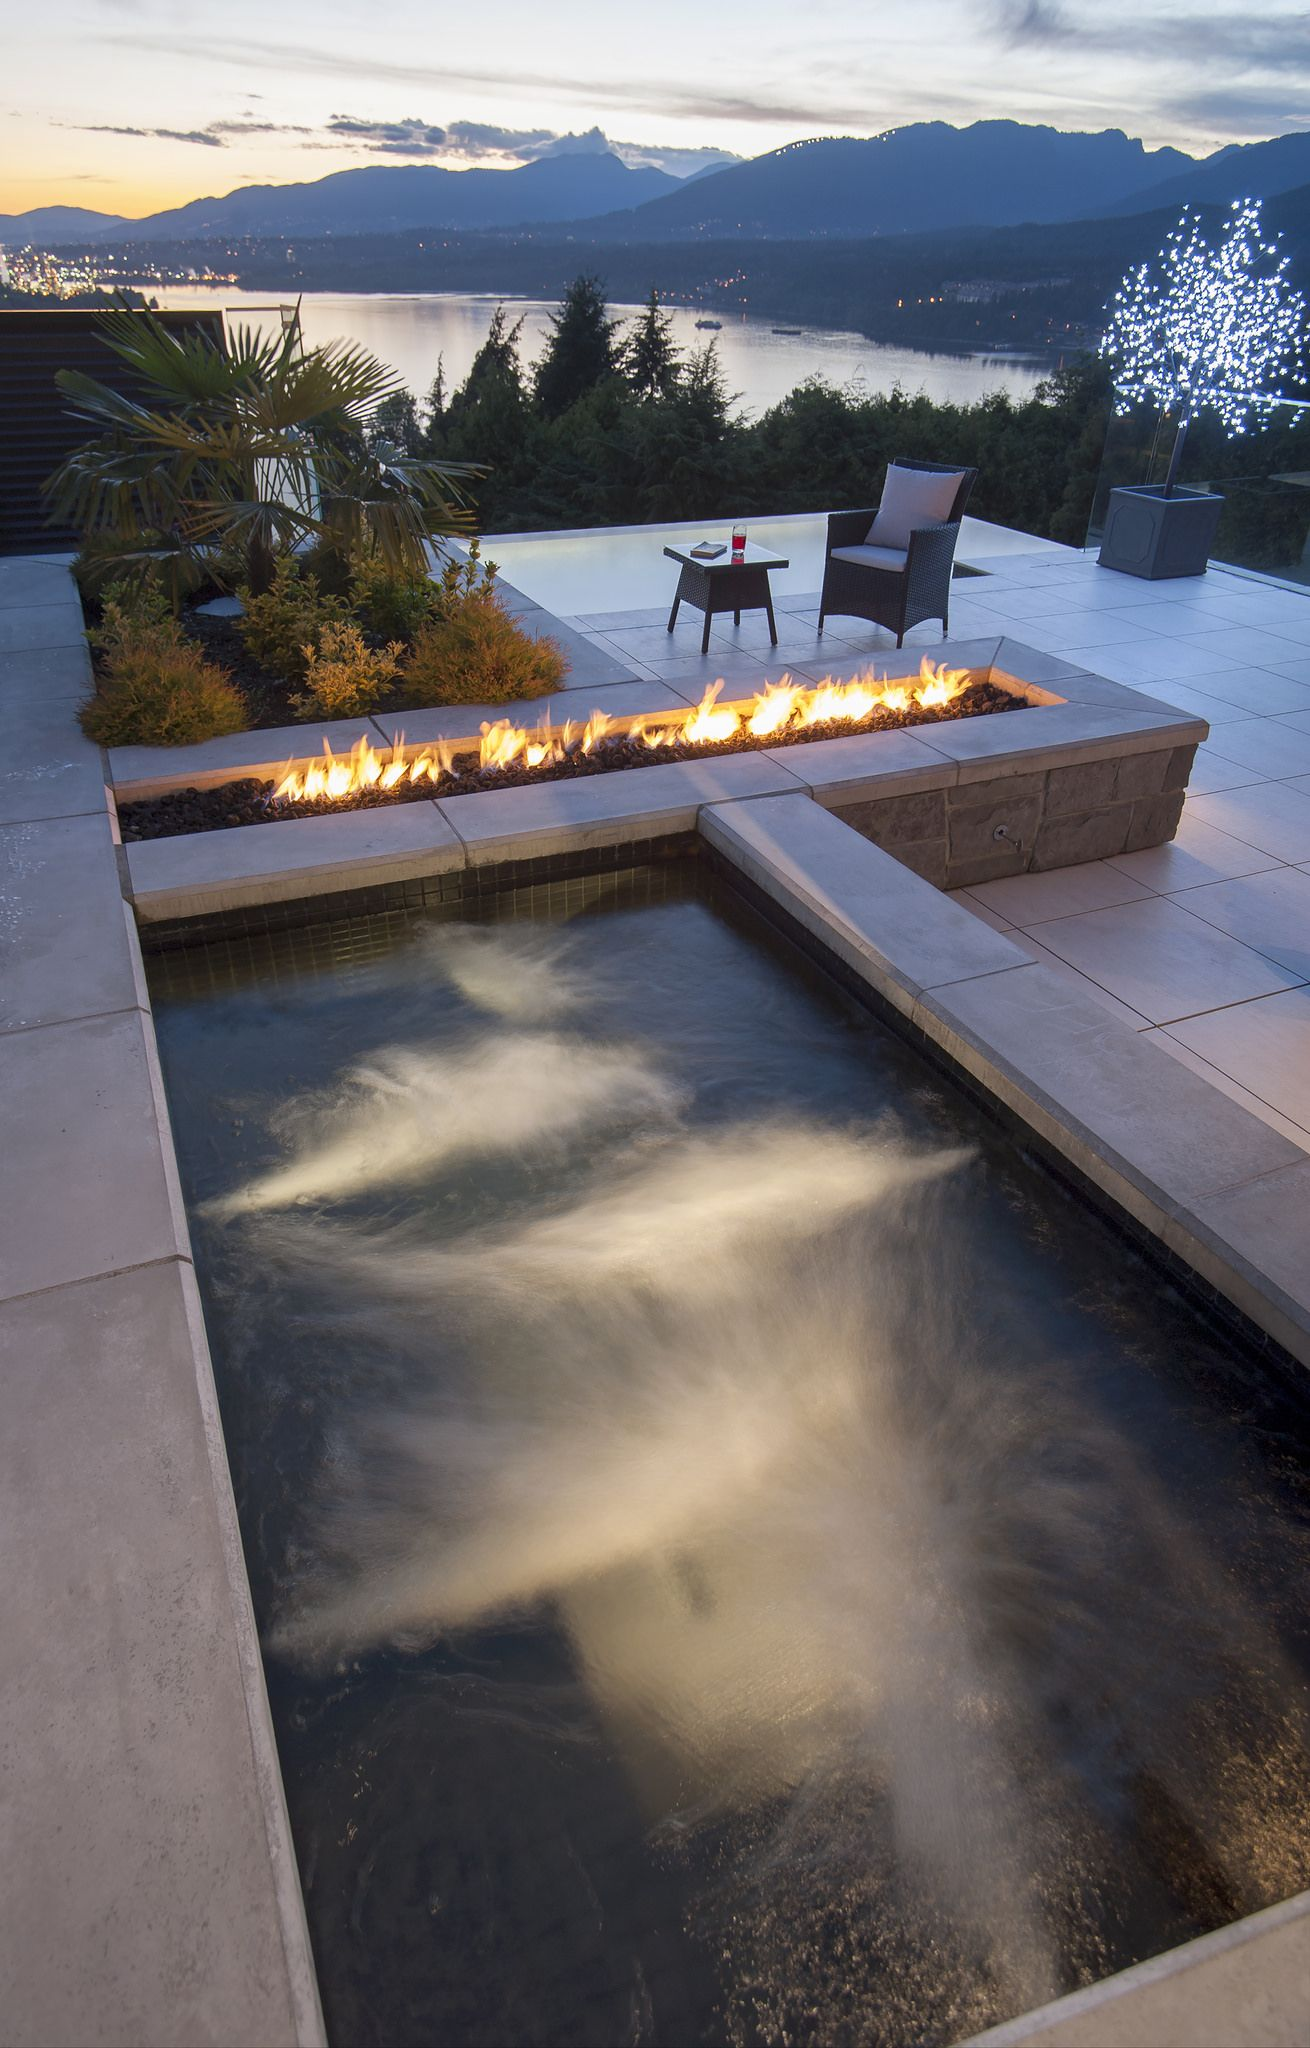 Jacuzzi Pool Temperature Alka Pool Cooler Weather Is The Perfect Excuse To Cozy